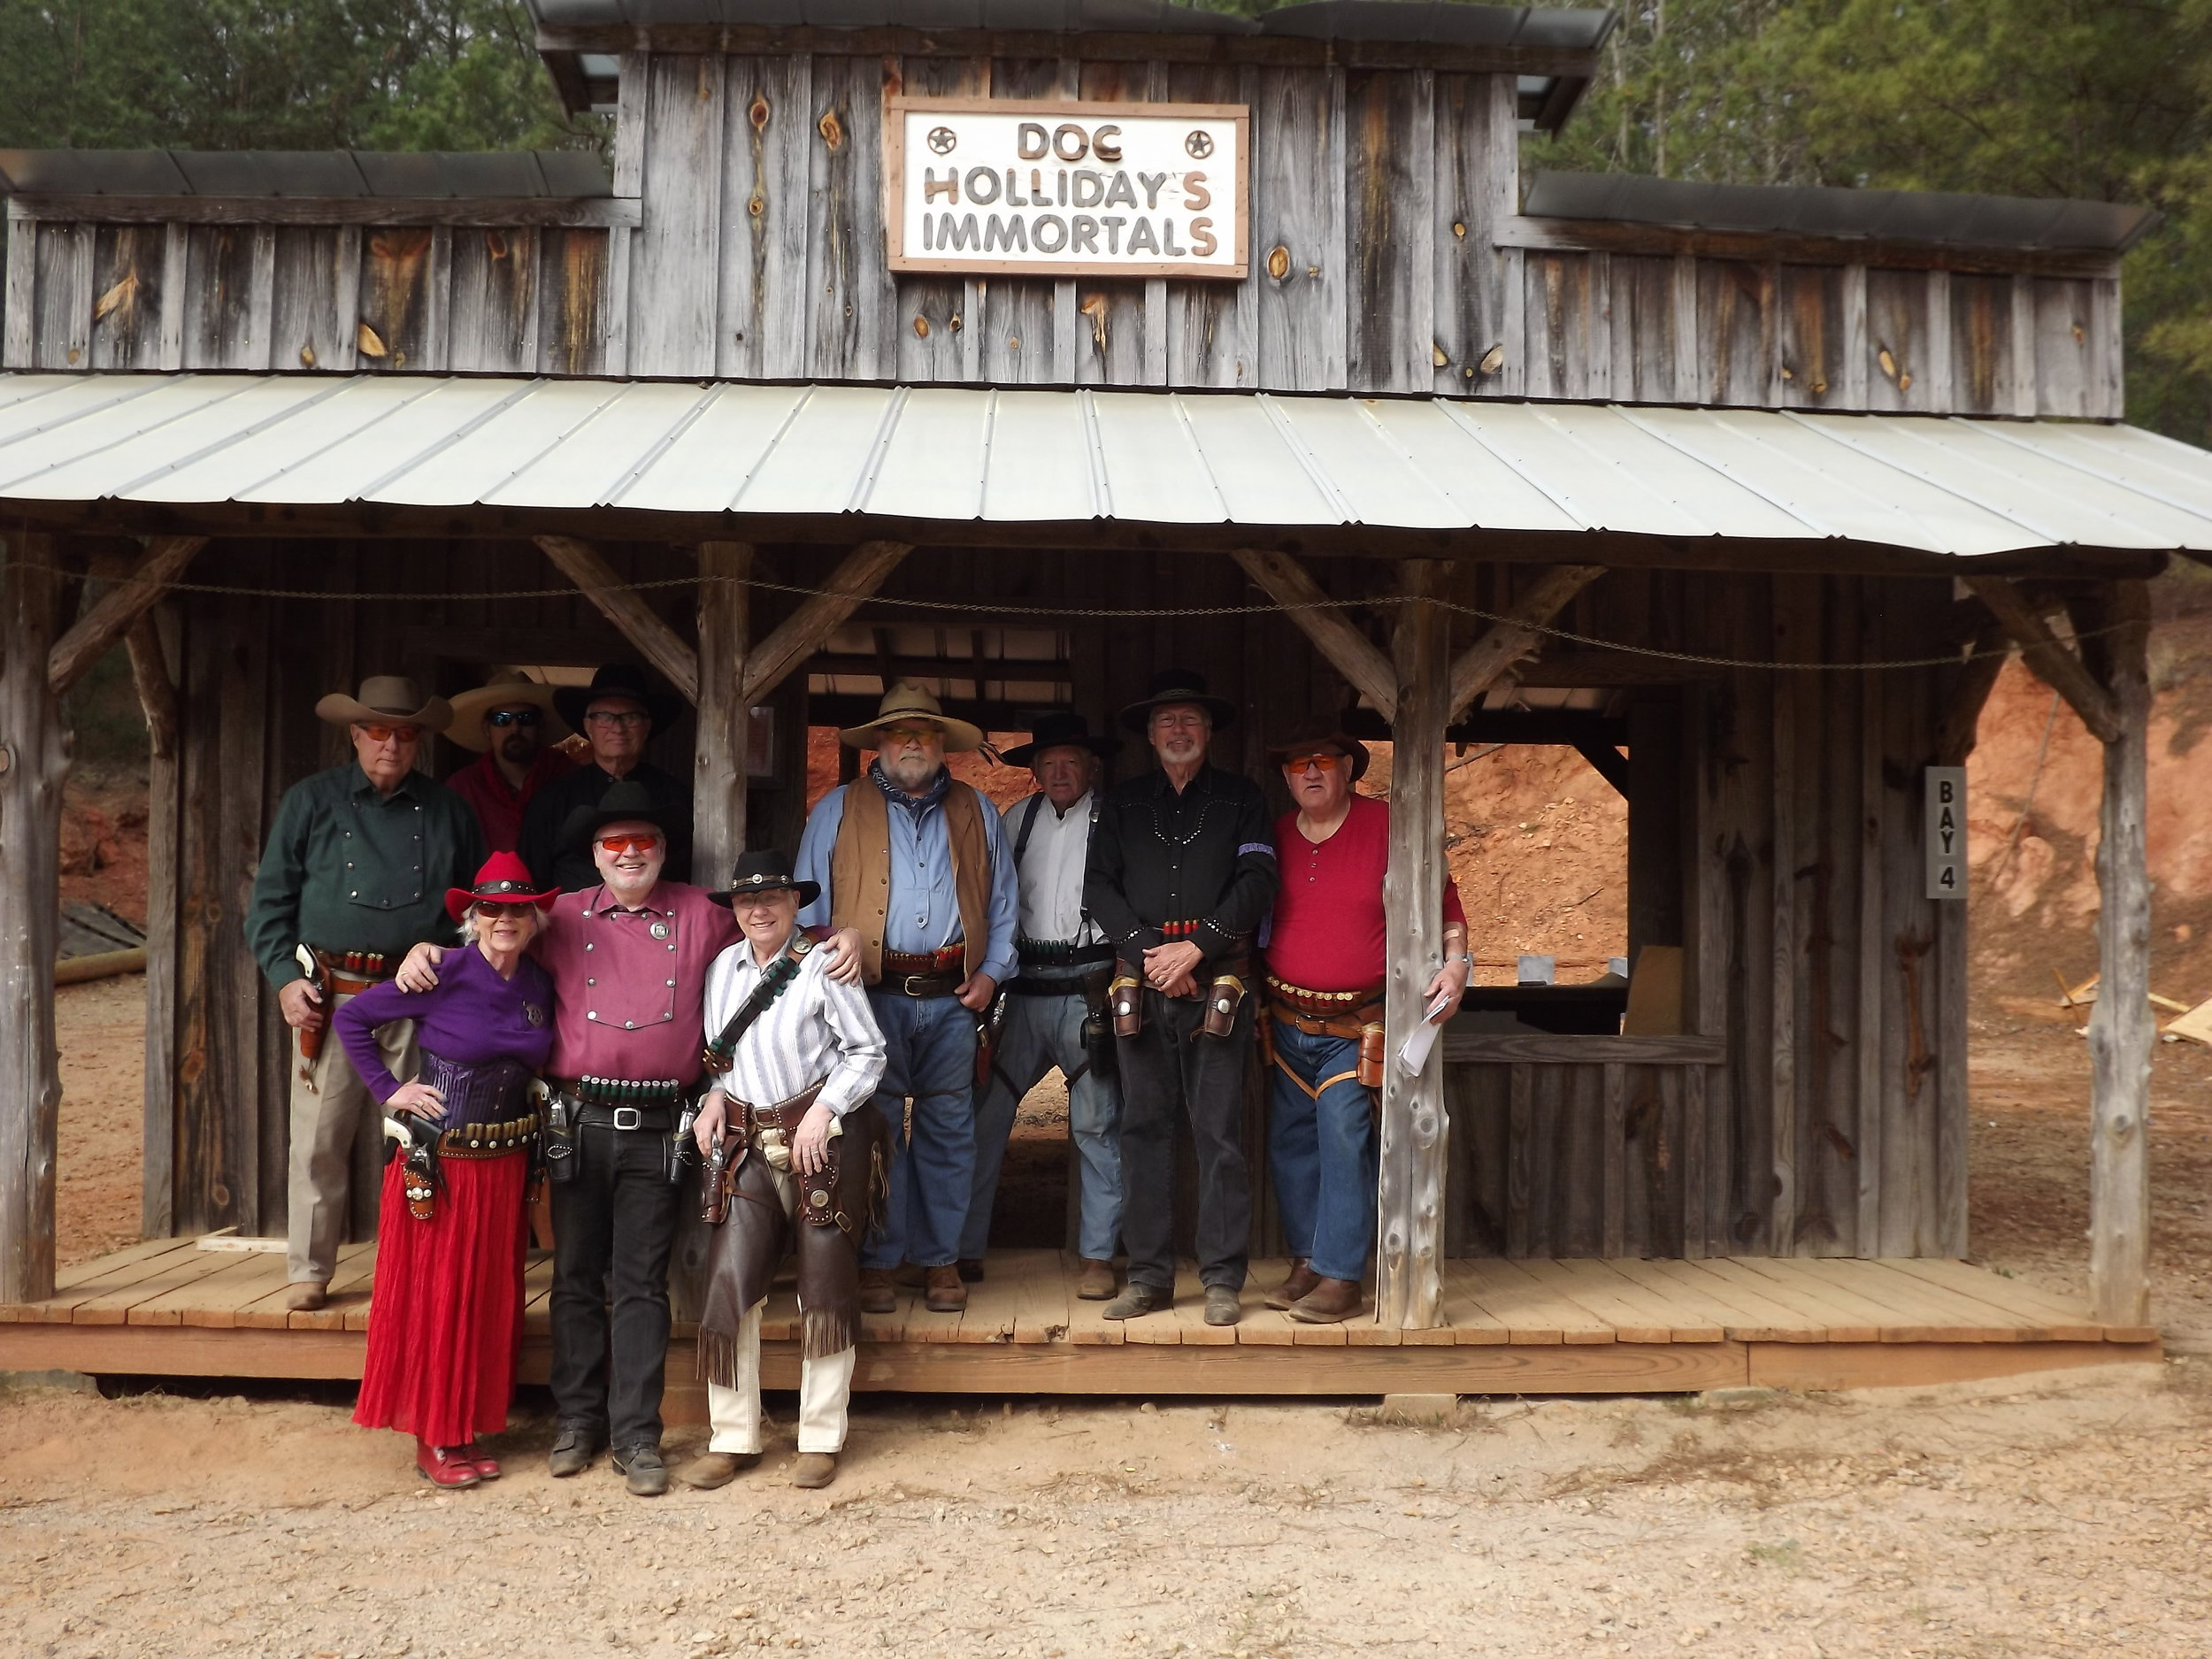 Front row l to r: Ophelia Payne, Fast Eddie and Witch Doctor. Back row l to r: Ironhorse Jim, Lighthorse Pete, Max Payne, Rowdy Ranger Rick, Pig Iron Lane, Cassalong Hopidy and Skeet Single Action